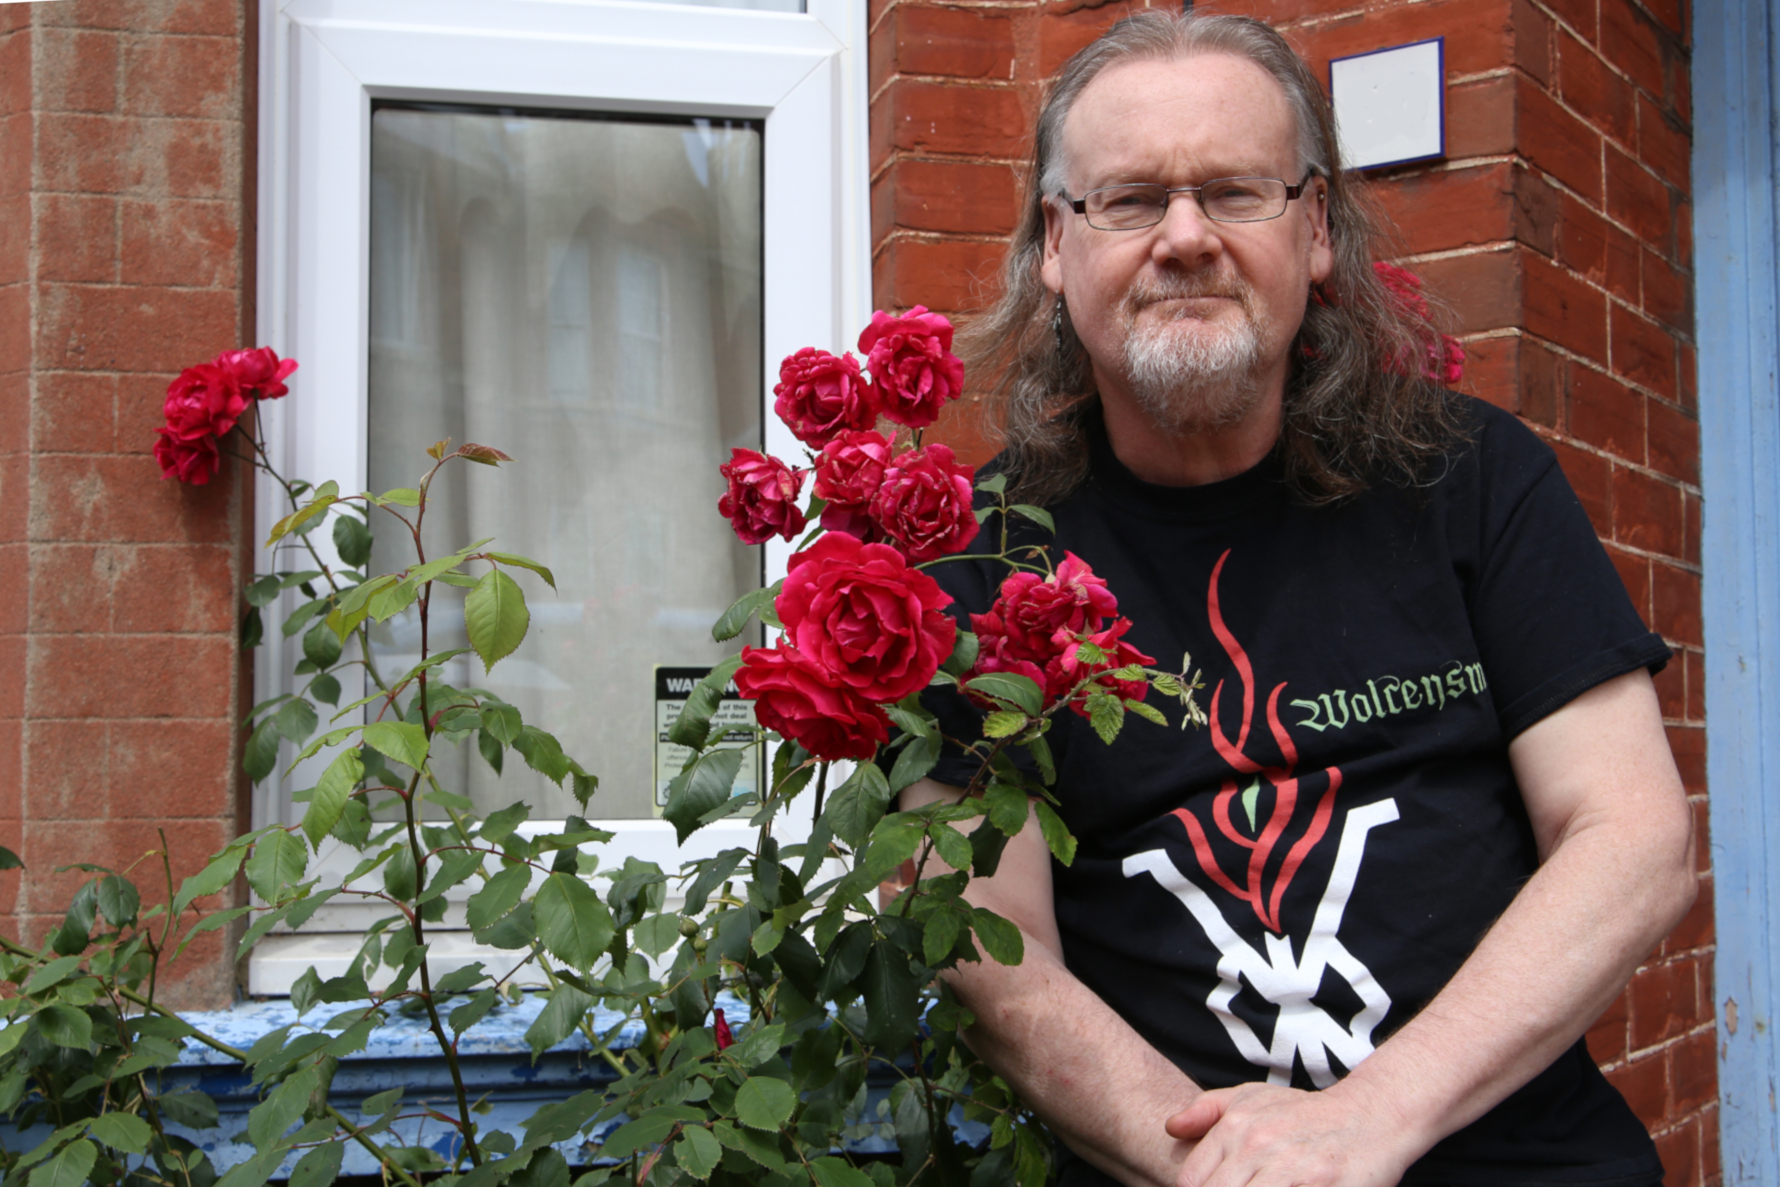 Longhaired man with roses